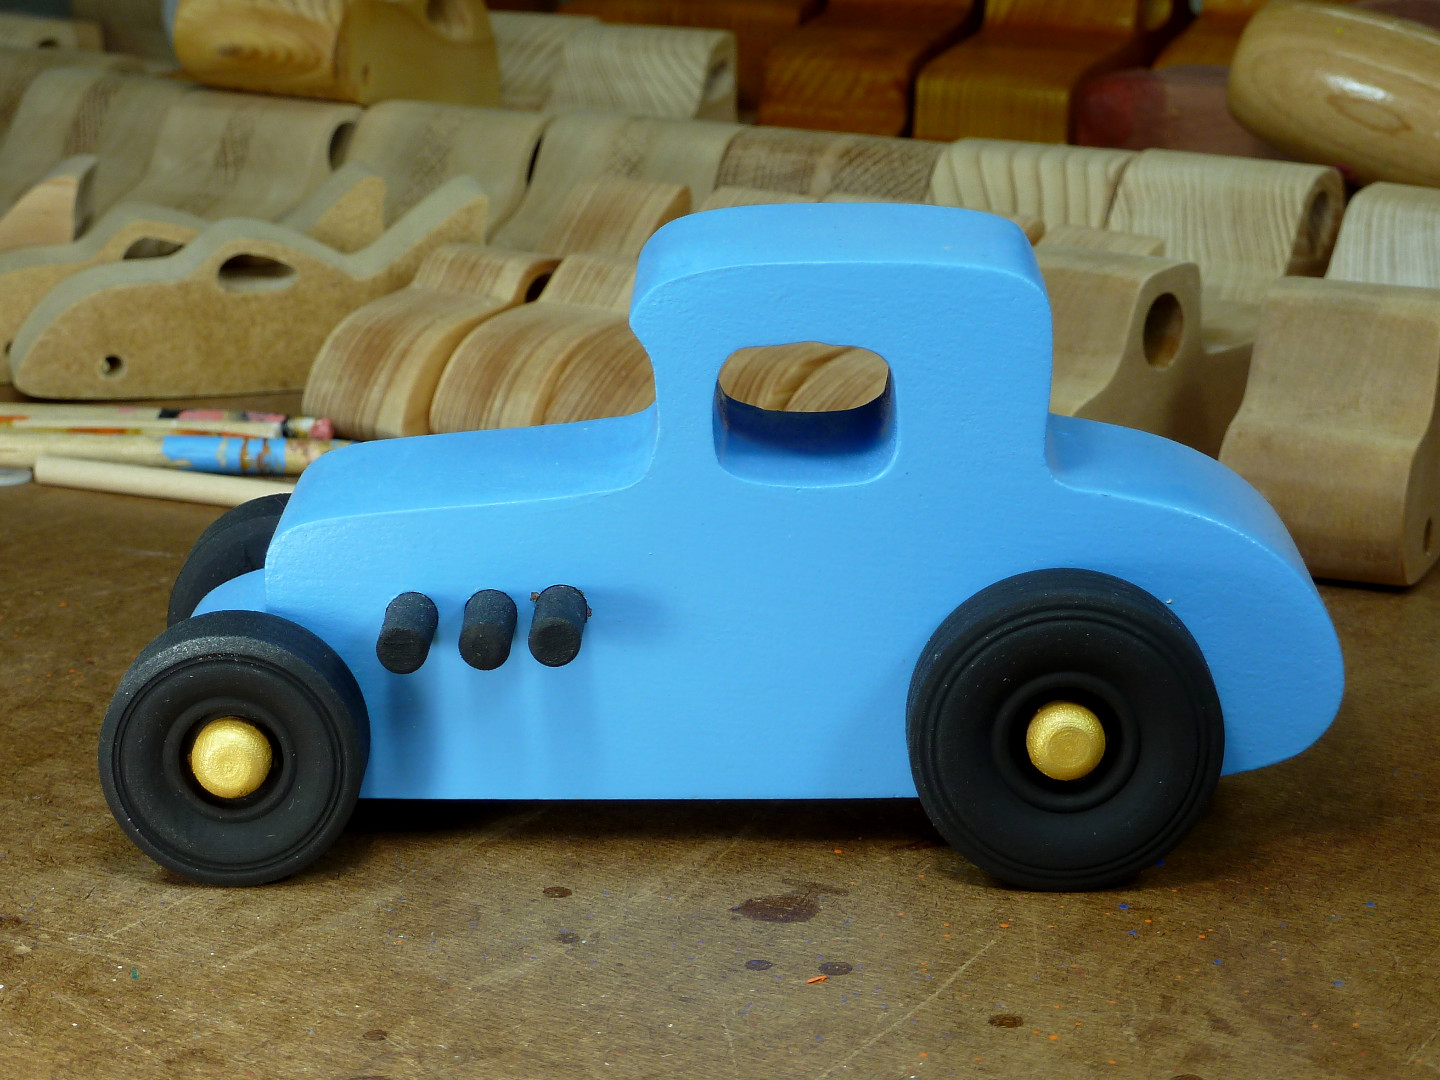 20170522-192708 Wooden Toy Car - Hot Rod Freaky Ford - 27 T Coupe - MDF - Blue - Black - Gold 04.jpg